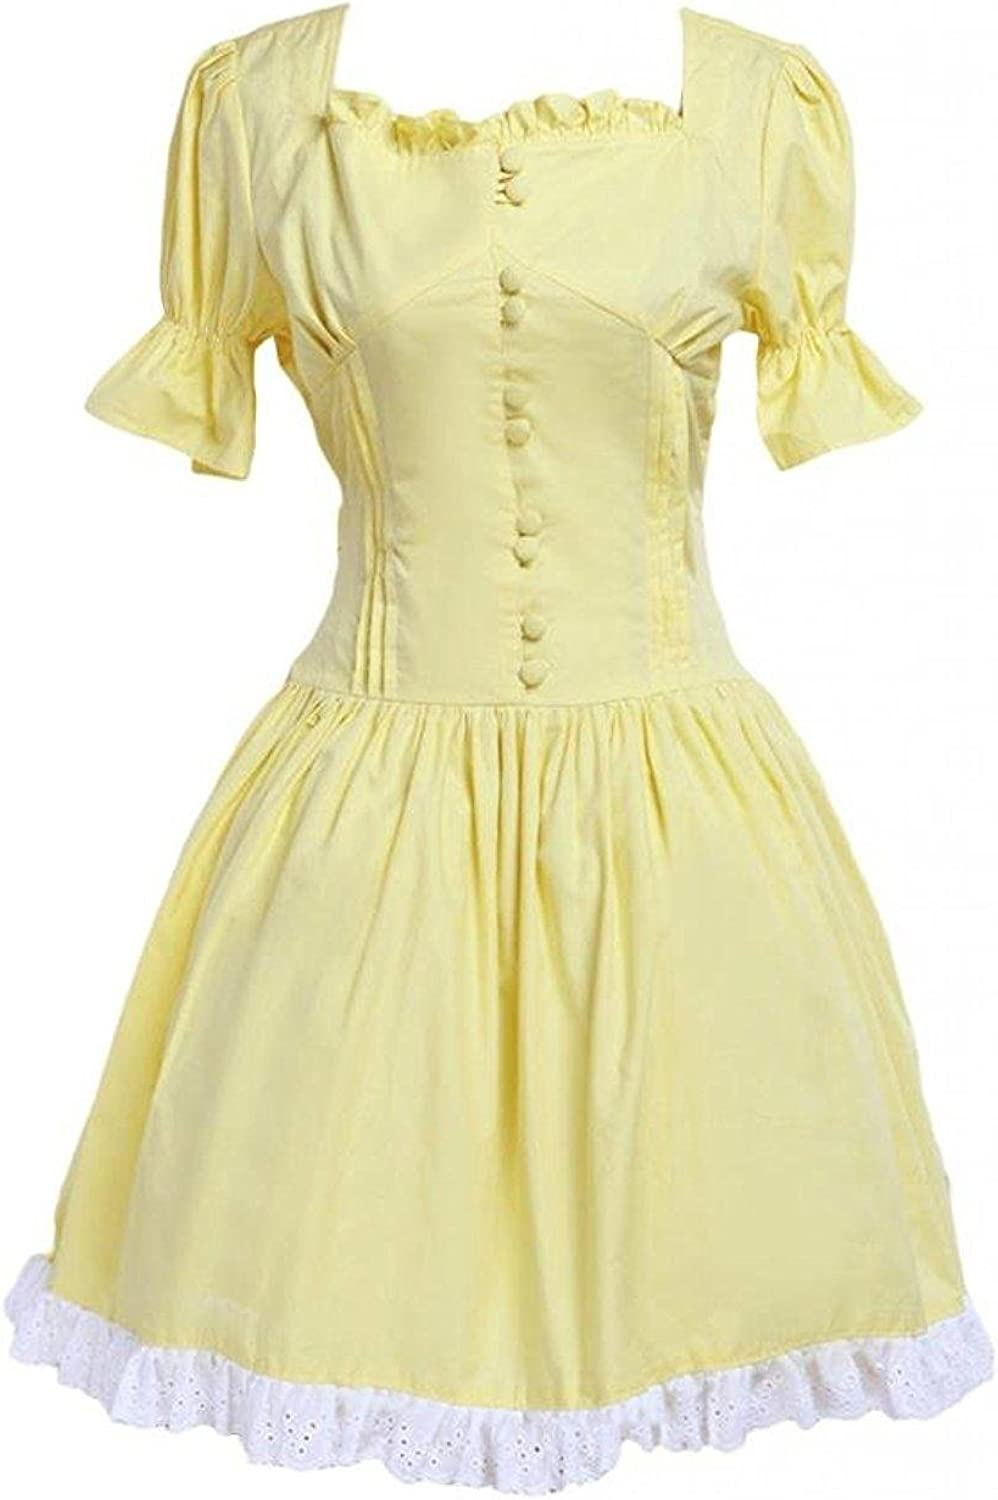 Cemavin Womens Yellow Cotton Lace Square Neck Short Sleeves Lolita OnePiece